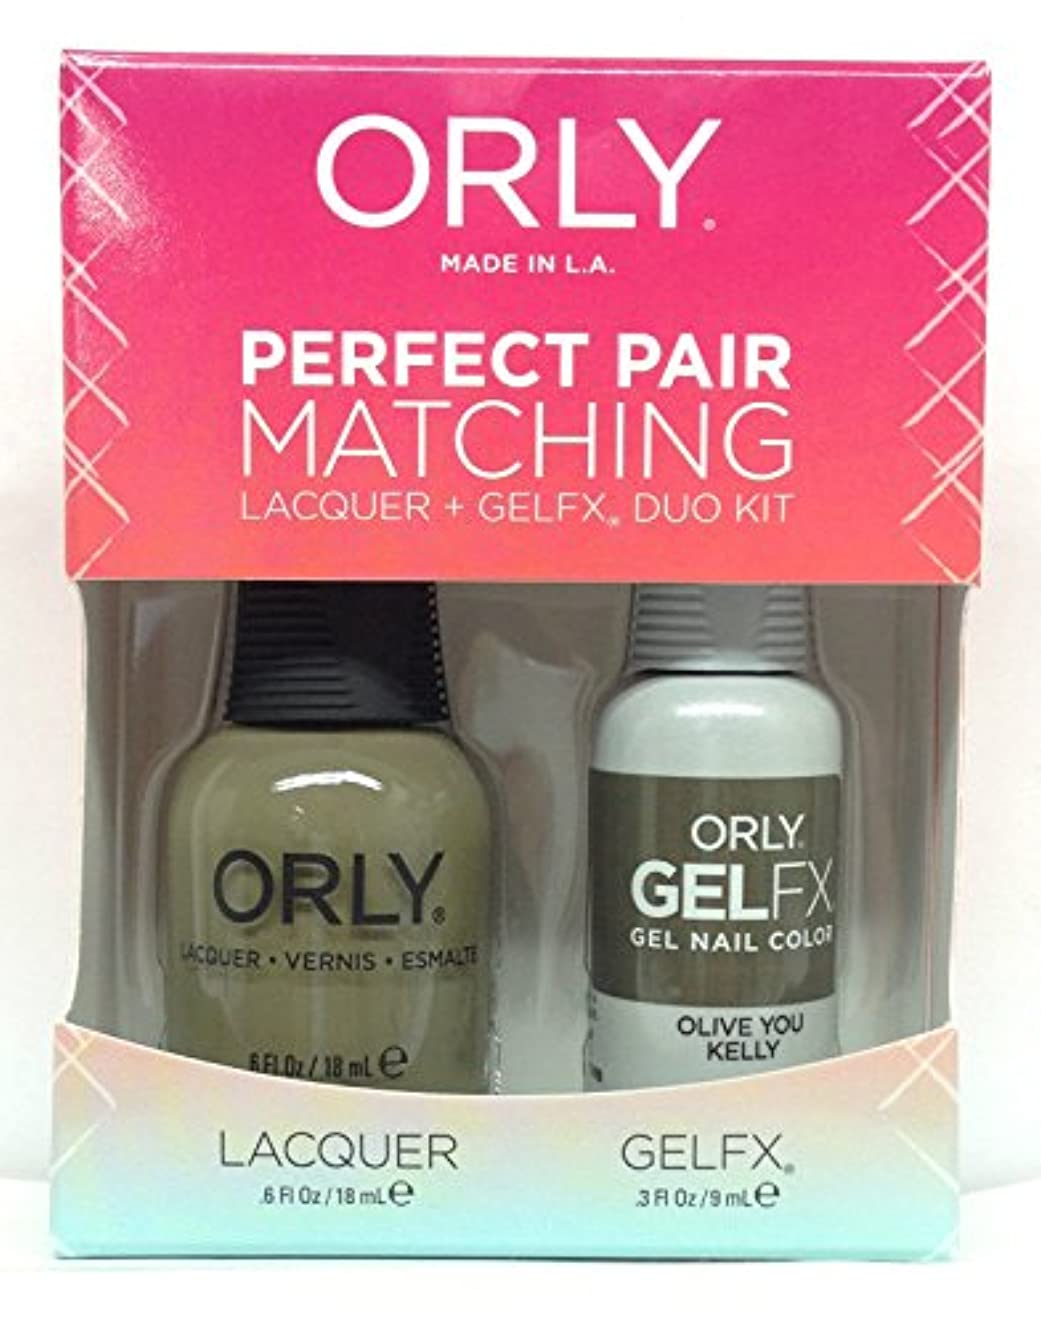 Orly - Perfect Pair Matching Lacquer + GelFX Kit - Olive You Kelly - 0.6 oz / 0.3 oz